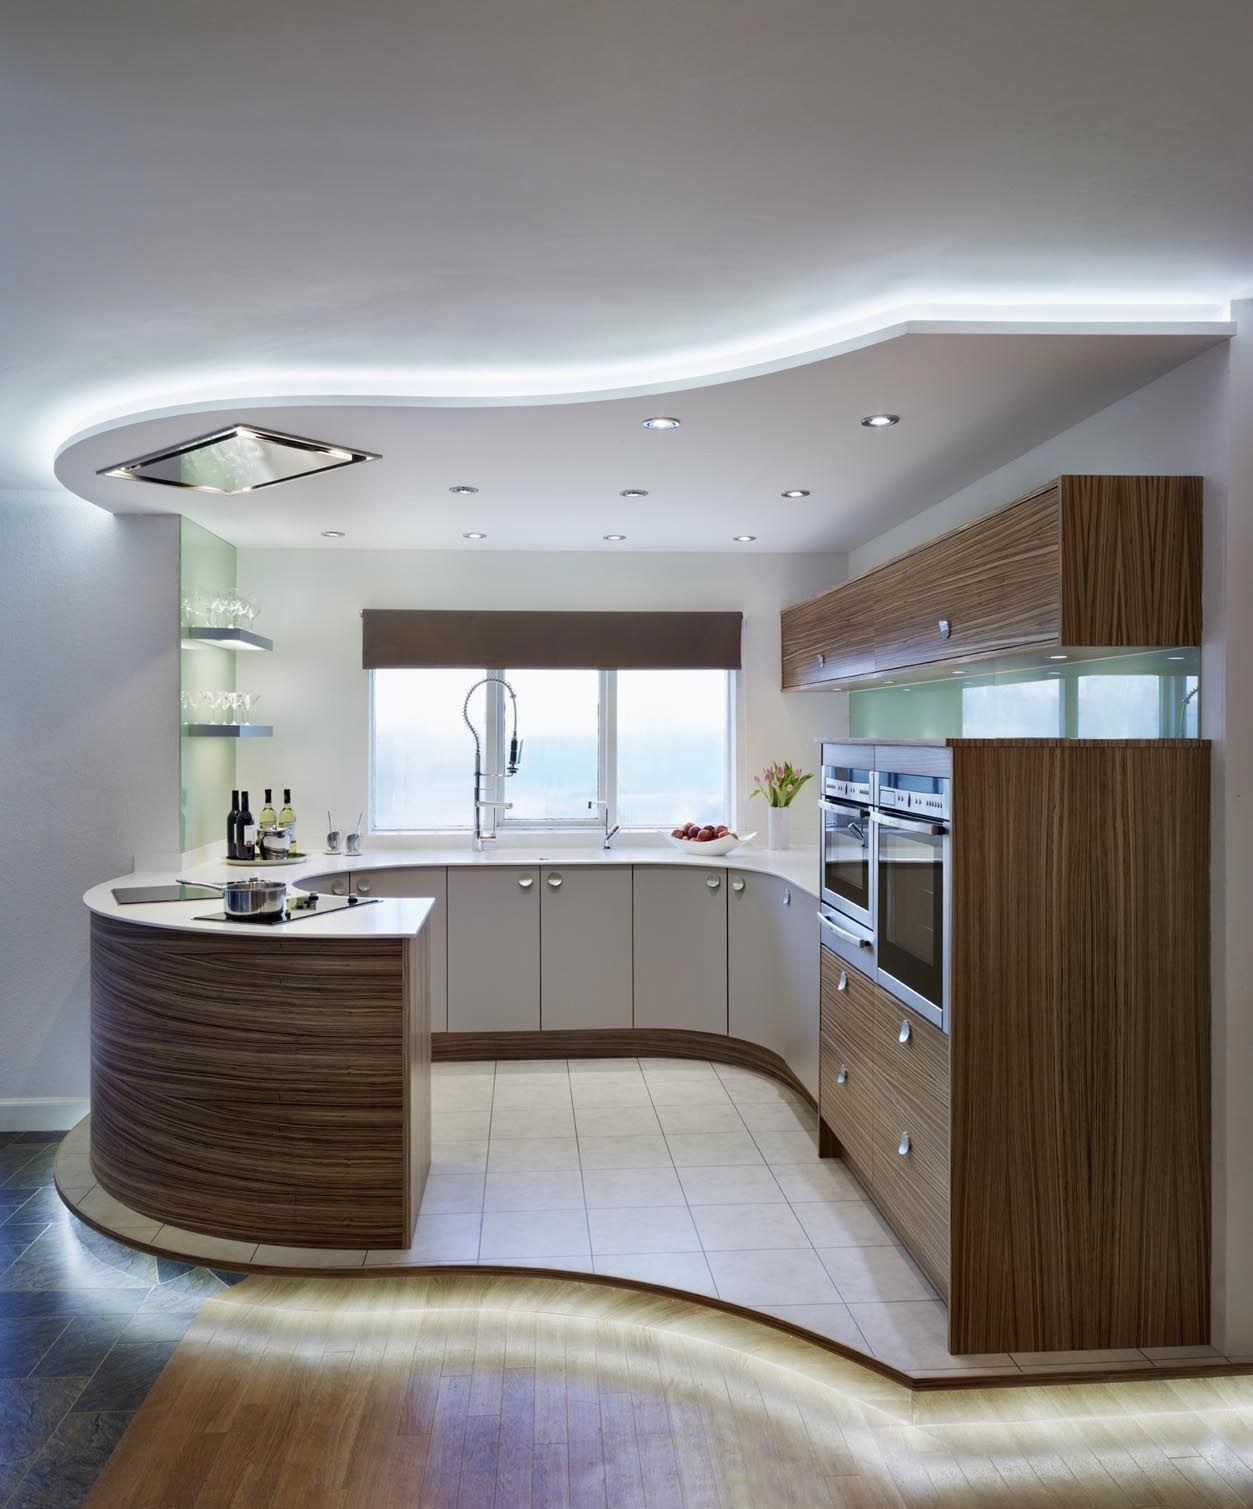 13 Best Kitchen Cupboard Designs - Contemporary kitchen design, Modern kitchen design, Kitchen cupboard designs, Contemporary kitchen, Luxury kitchen design, Modern kitchen set - The doors ought to be very attractive  Kitchen Cupboard Doors can be found in an assortment of fashions, sizes, colours and designs